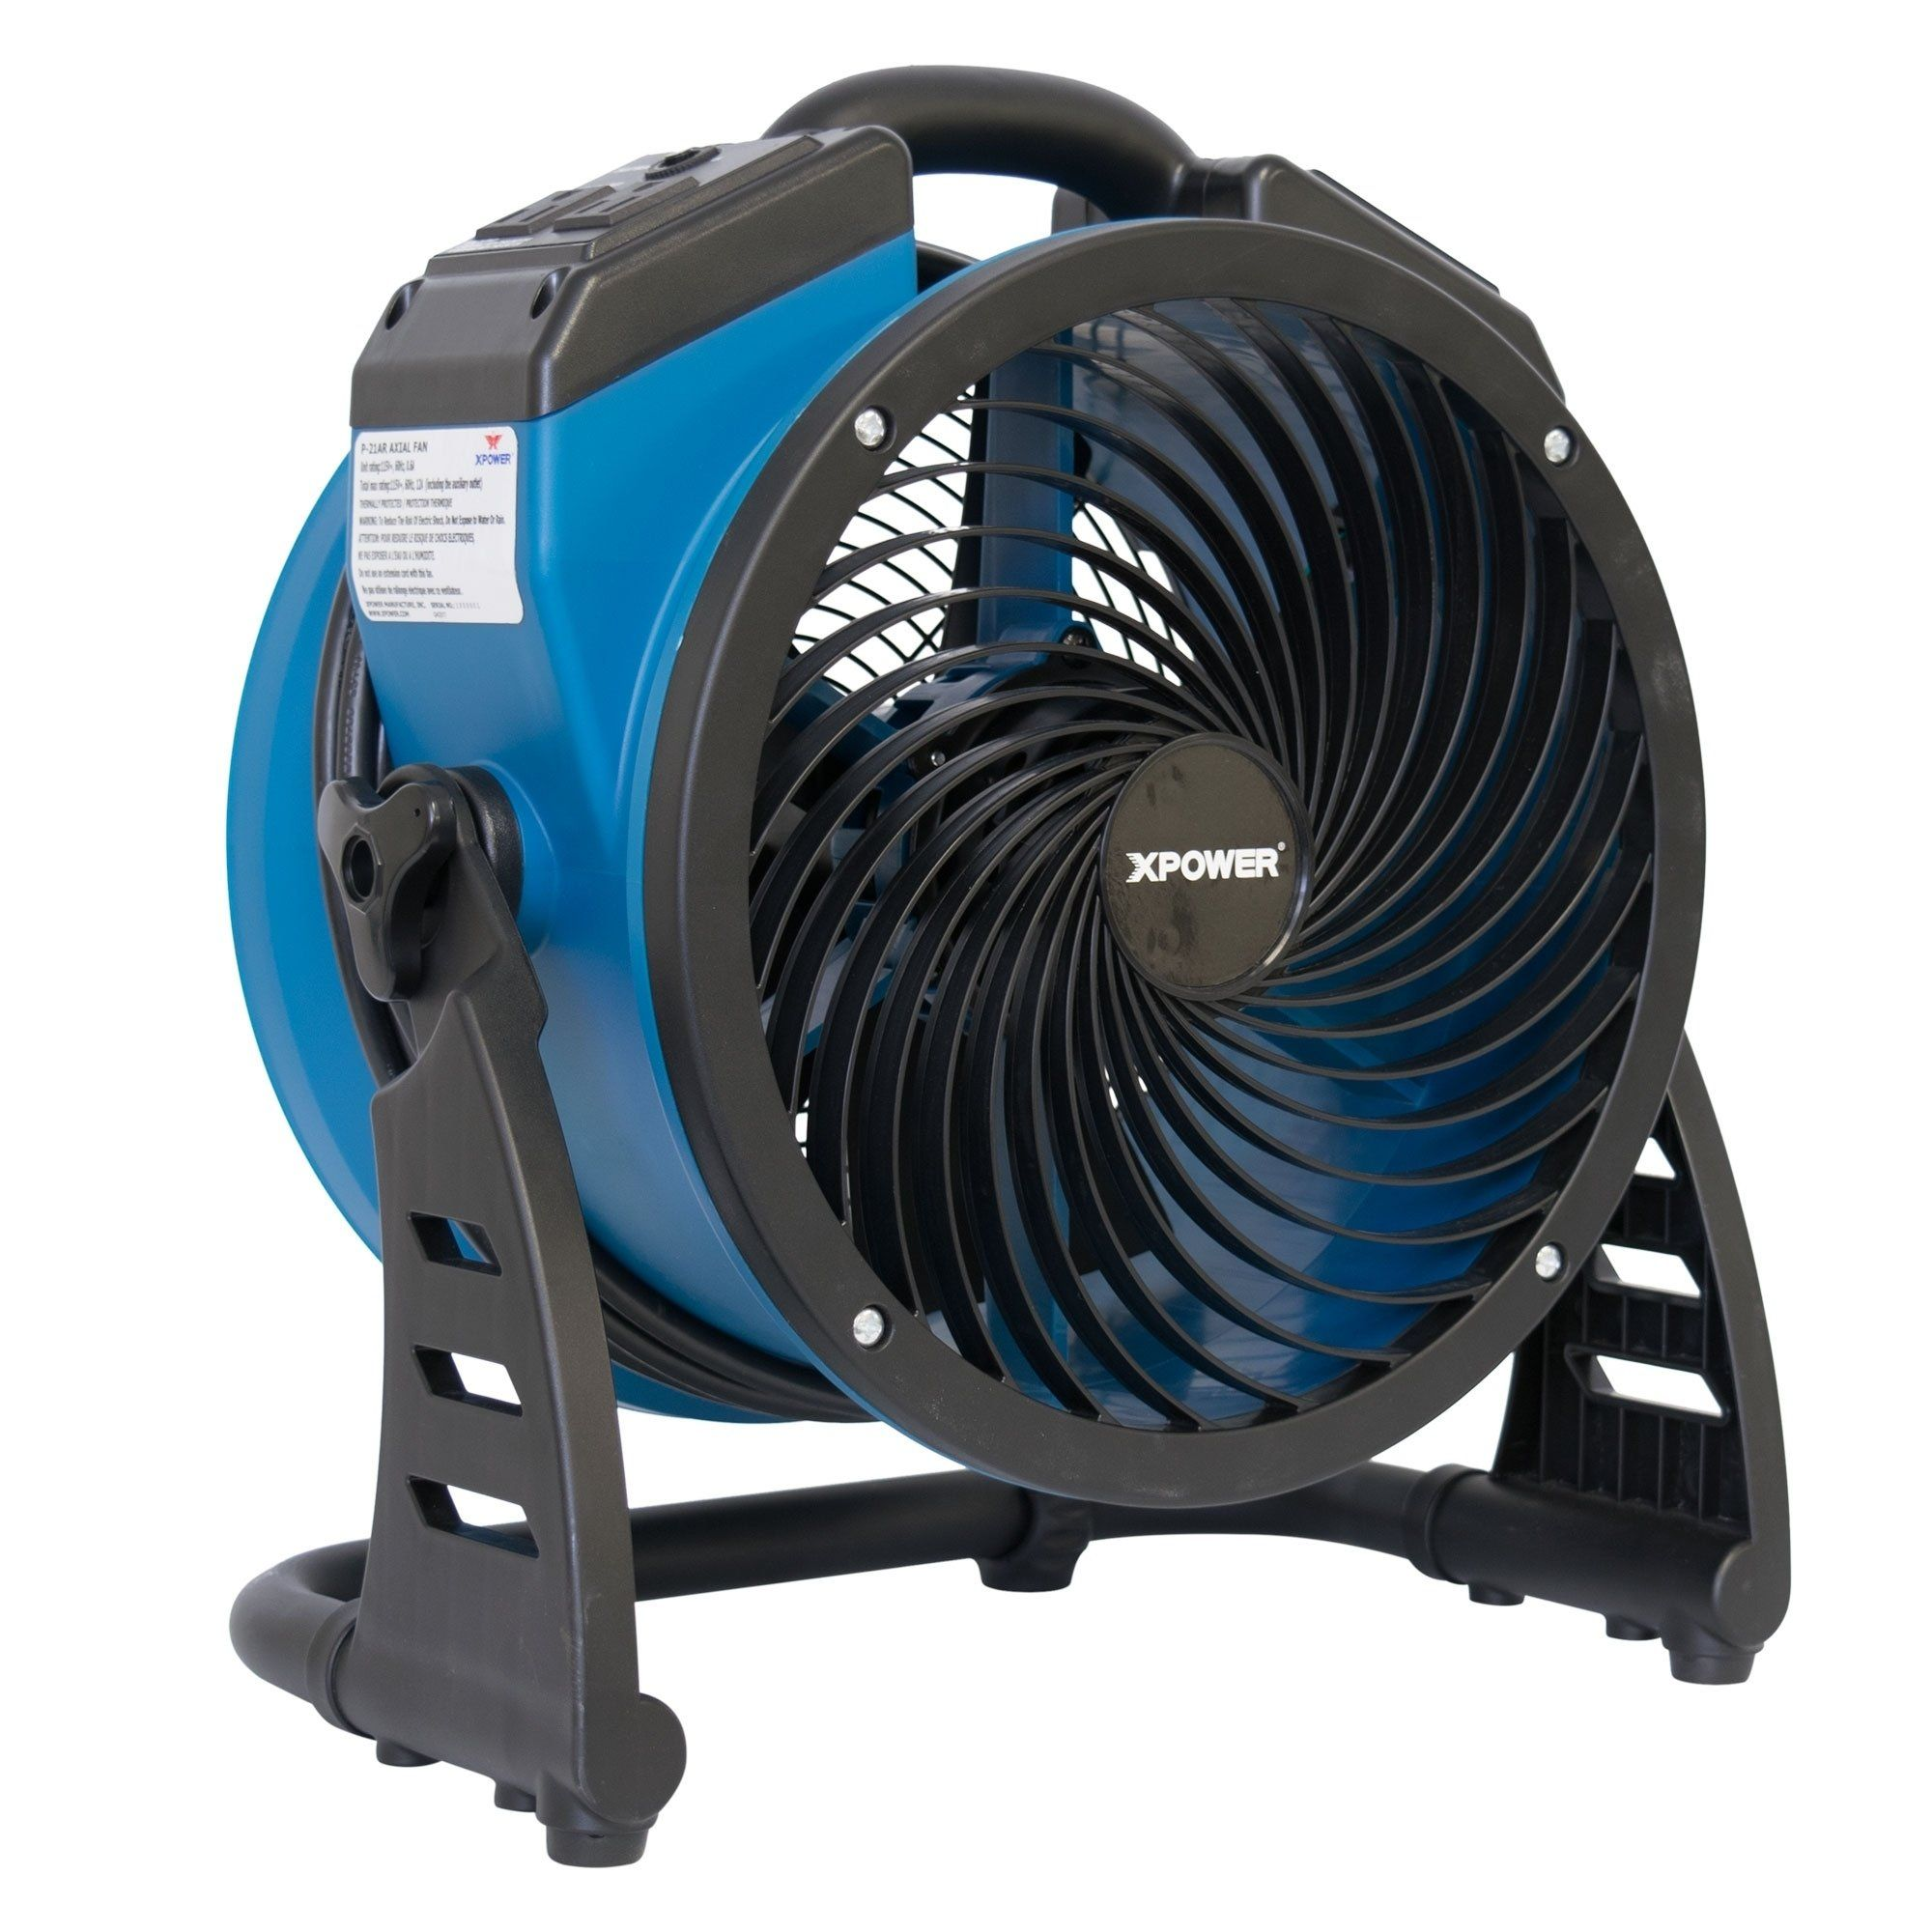 XPOWER P21AR 1100 CFM 4 Speed Industrial Axial Air Mover